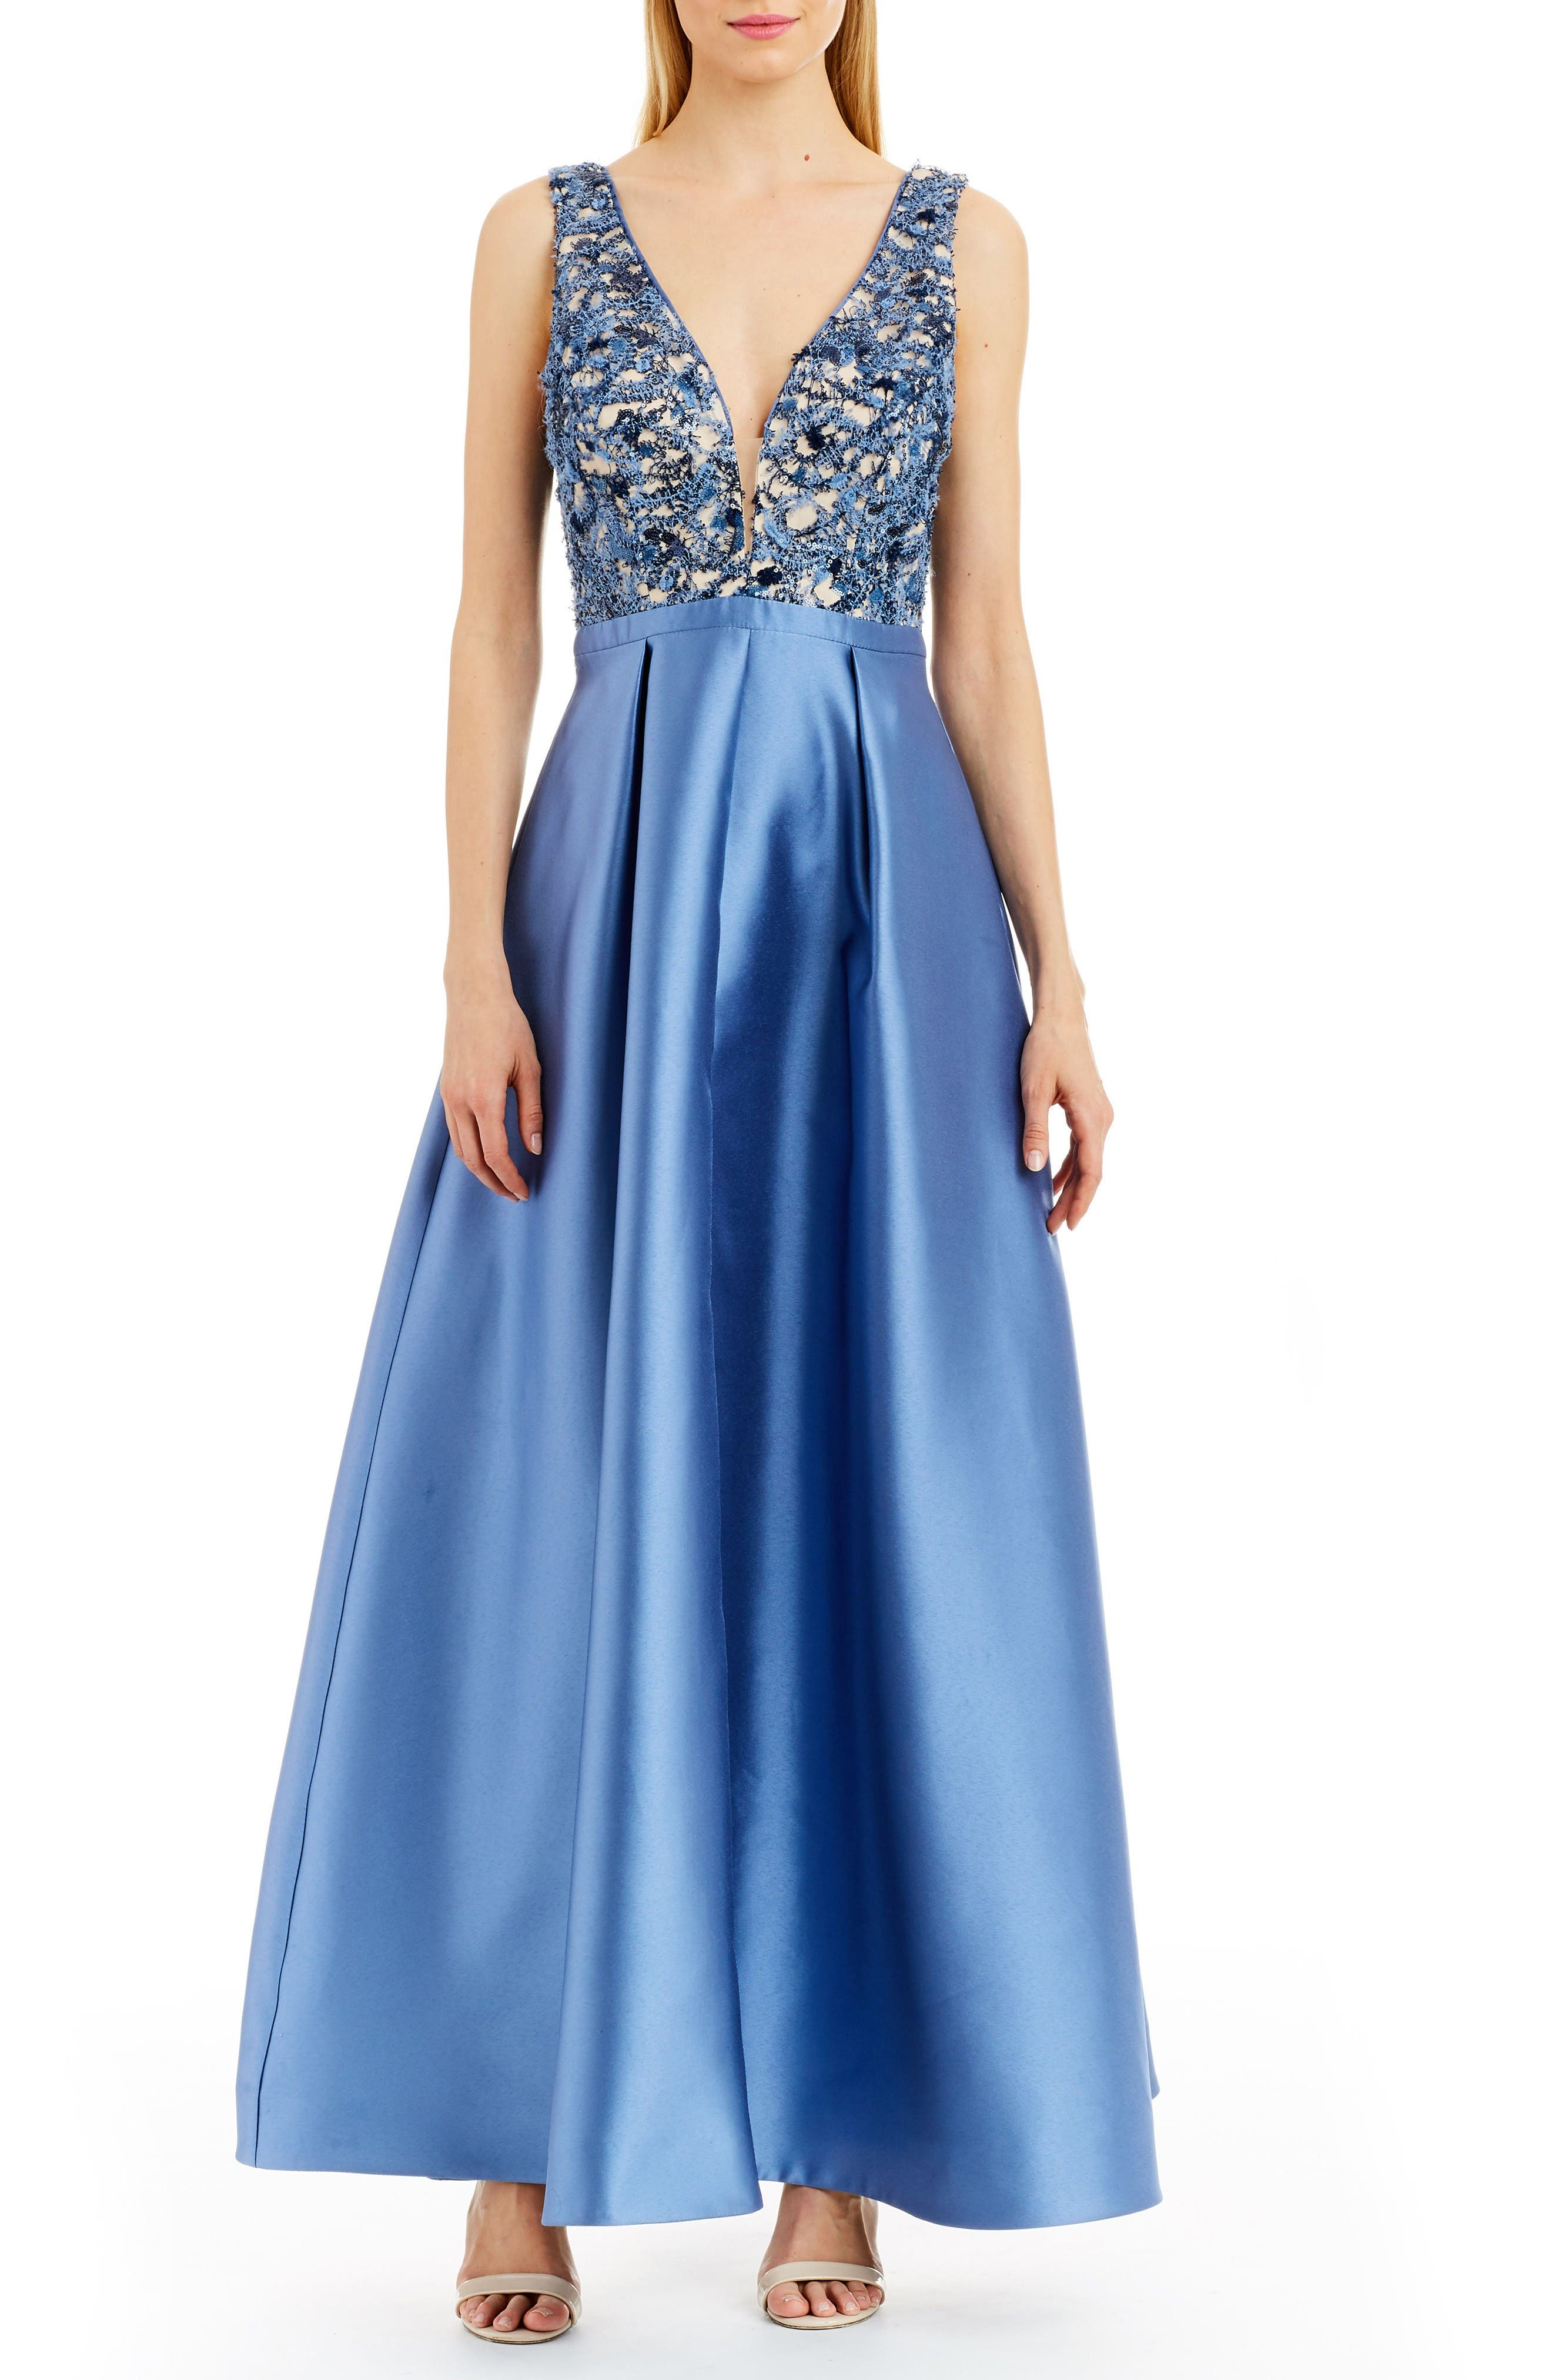 NICOLE MILLER NEW YORK Embellished Gown